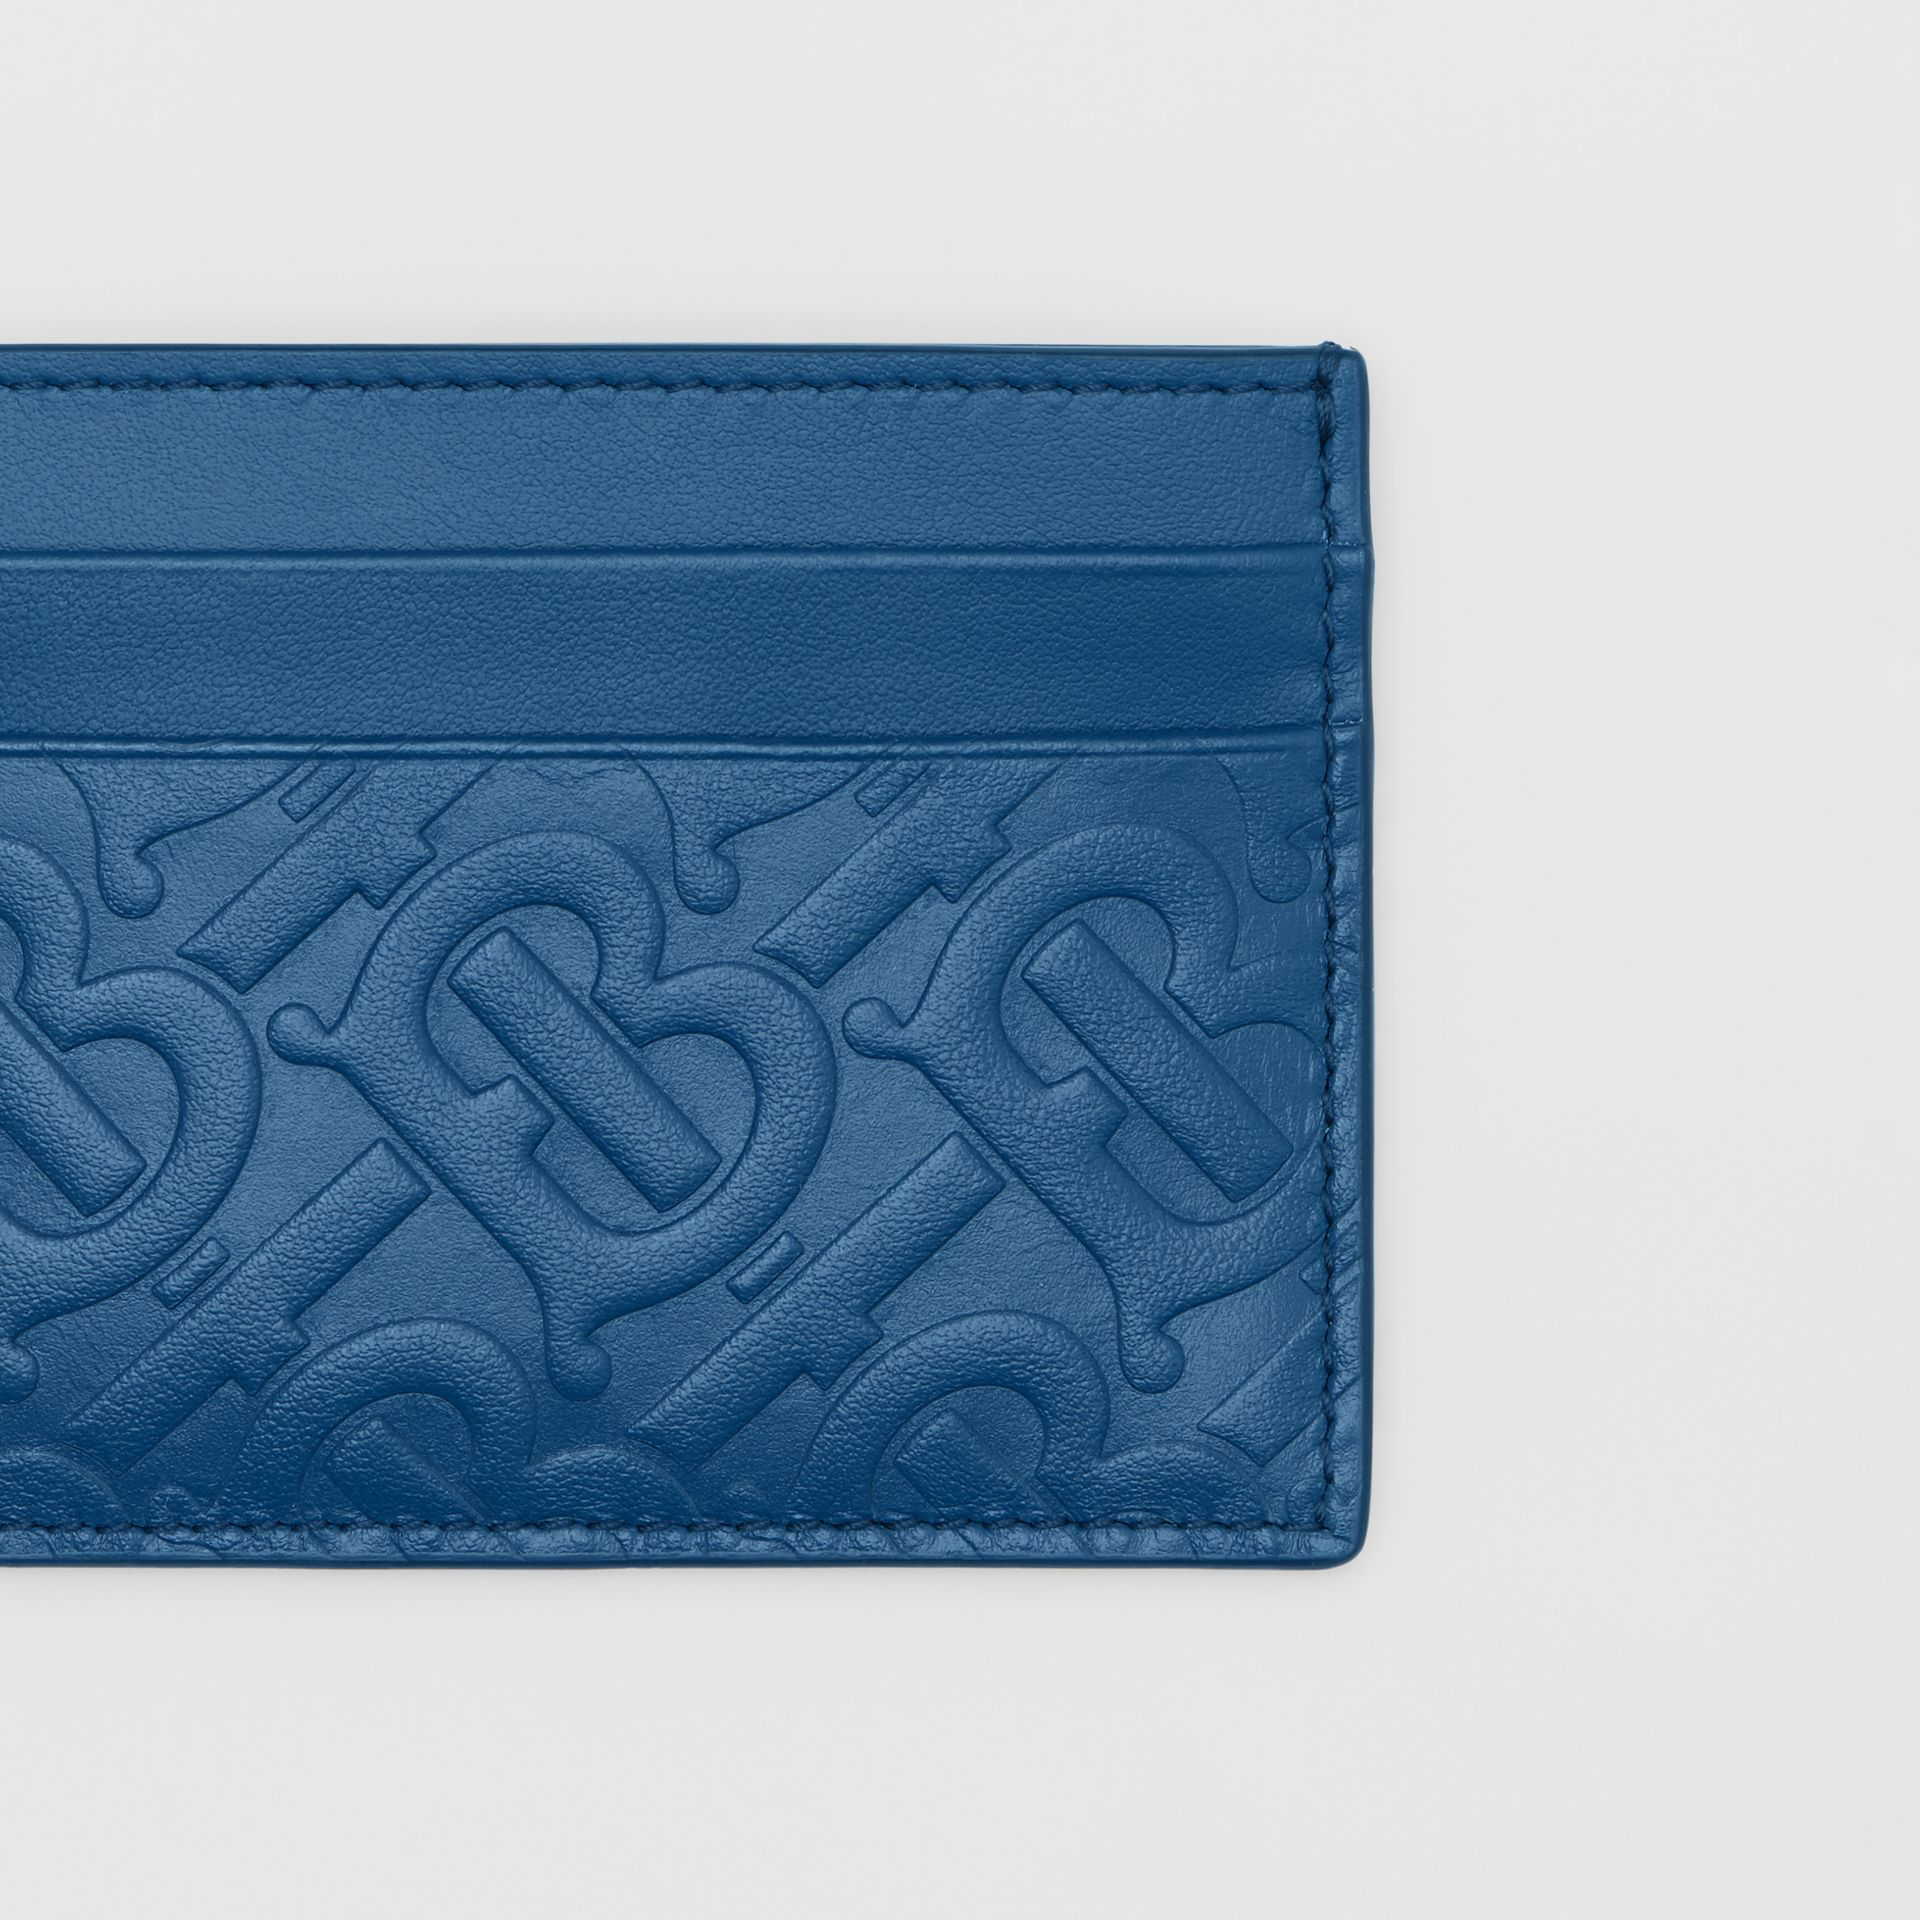 Monogram Leather Card Case in Pale Canvas Blue - Men | Burberry Hong Kong S.A.R - gallery image 1